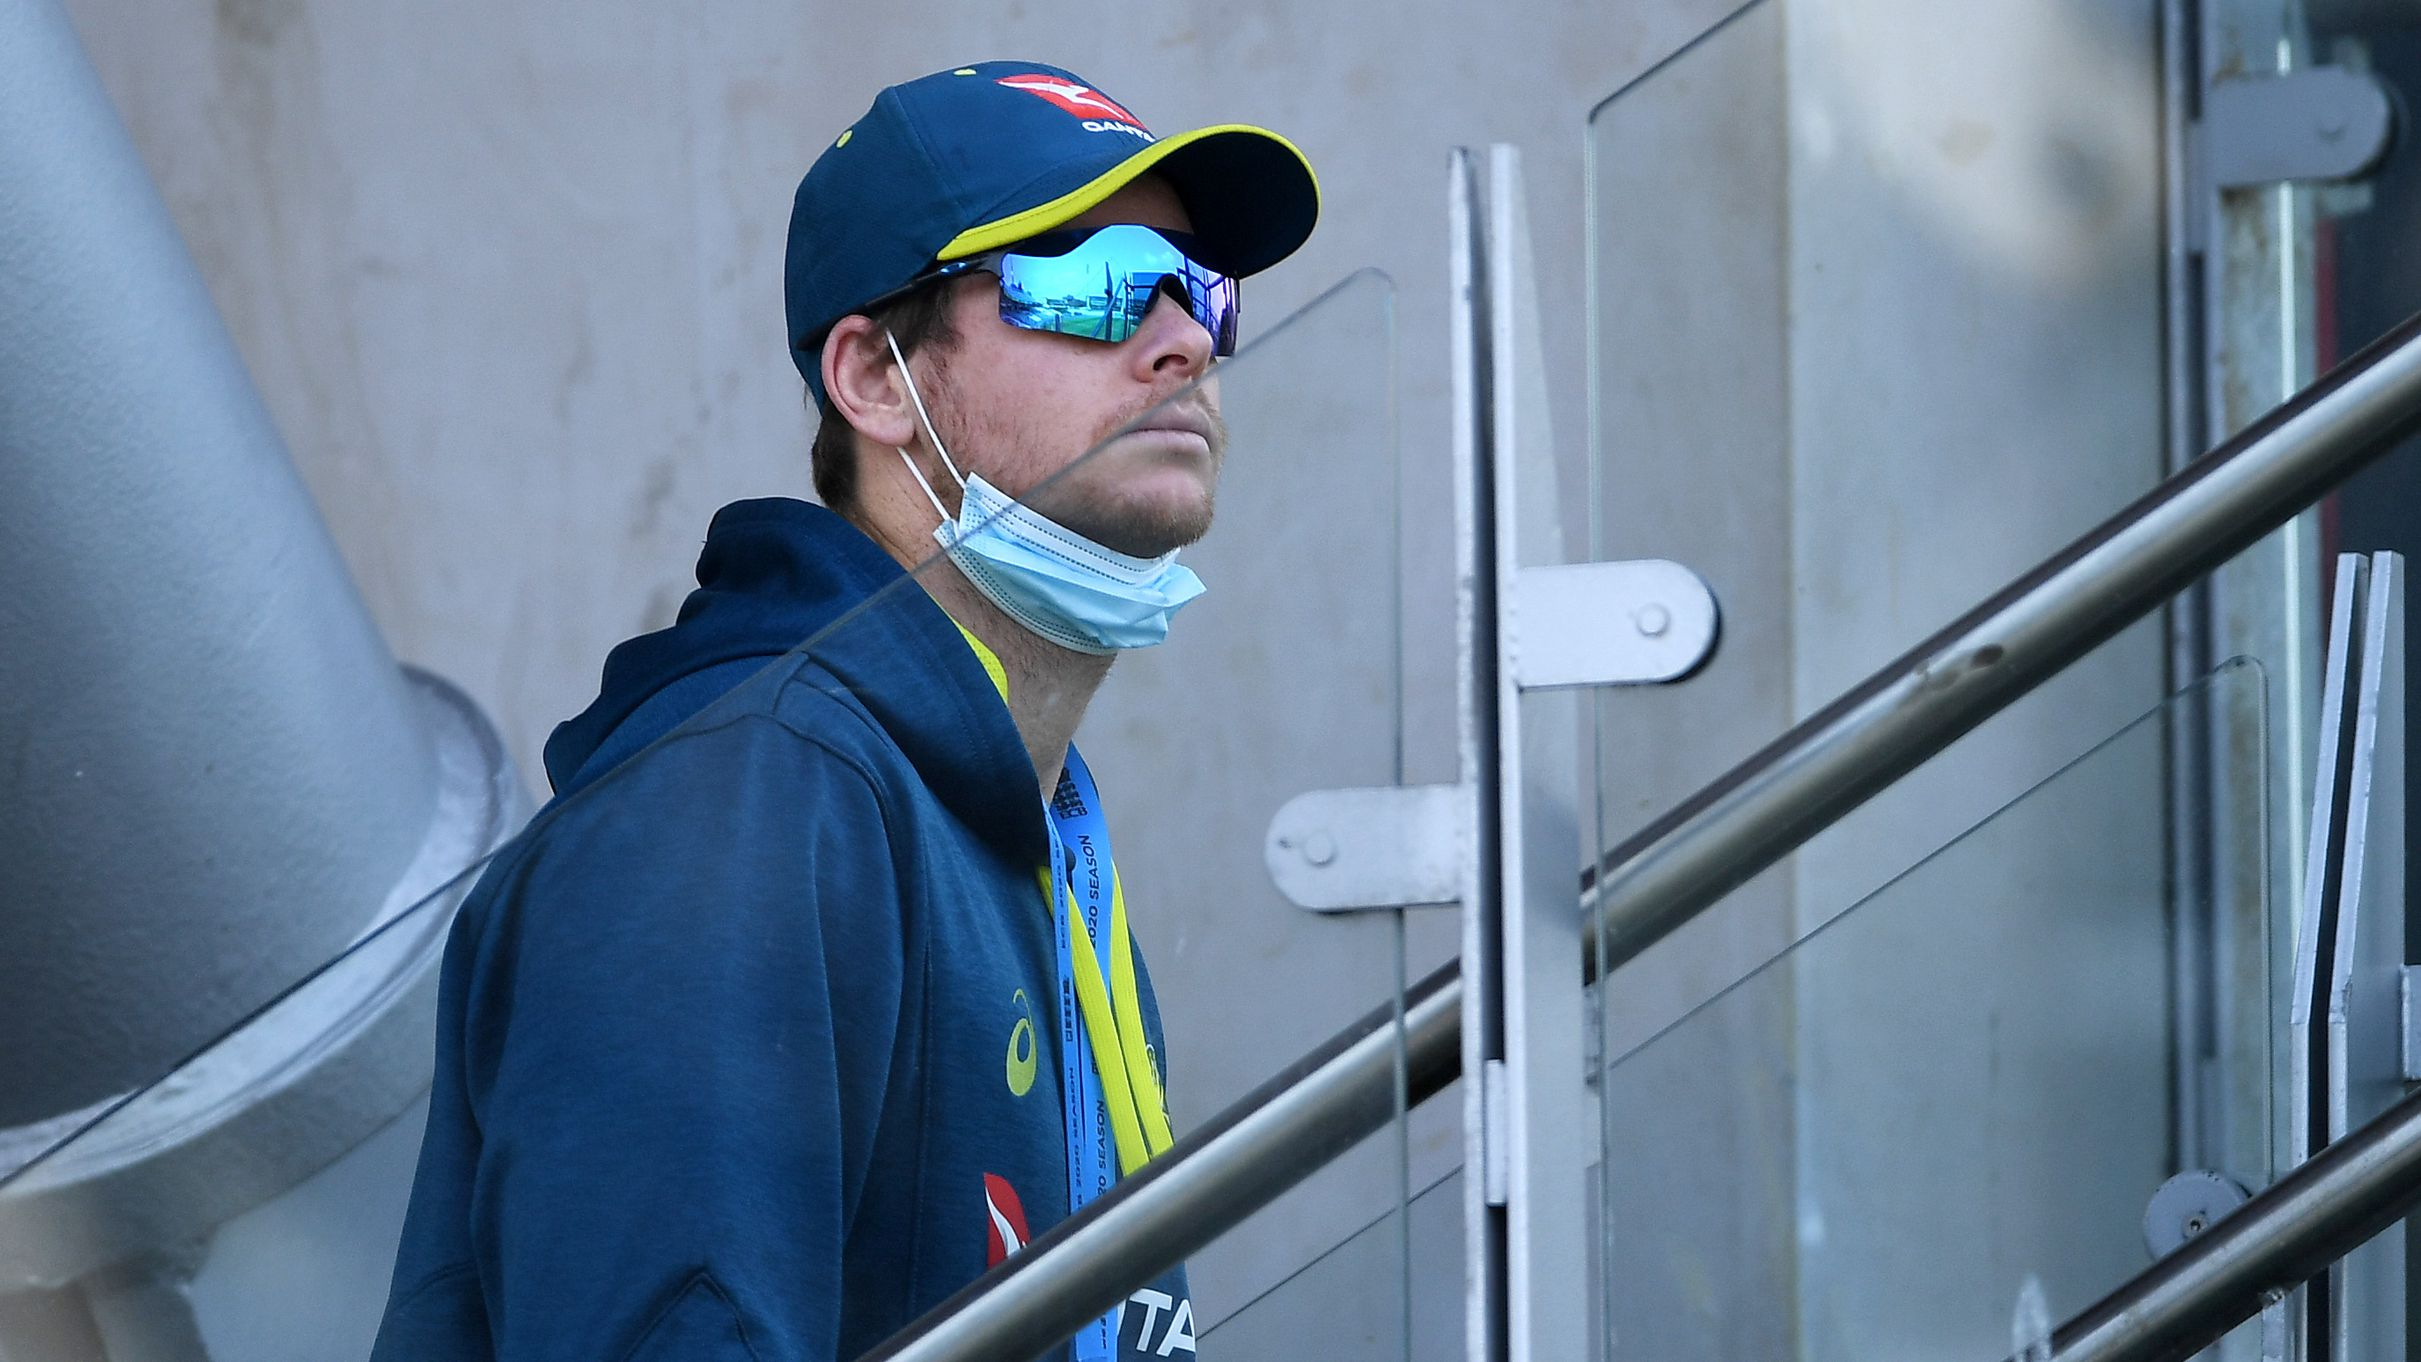 Steve Smith of Australia looks on at Old Trafford.